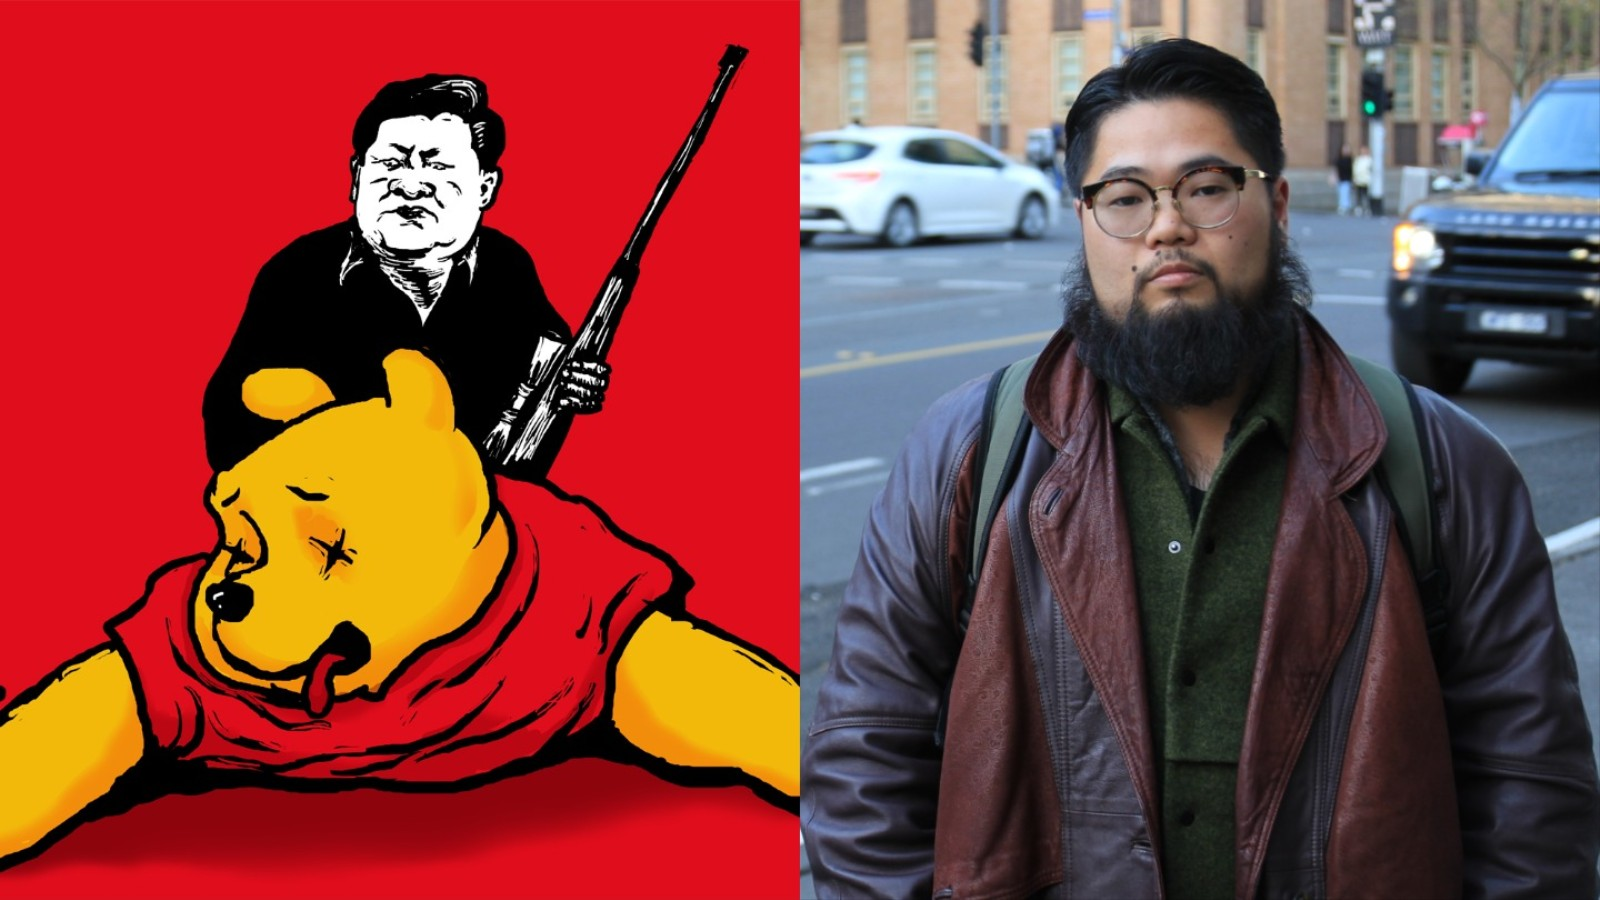 China's Most Controversial Cartoonist Fears He Could Disappear at Any Moment